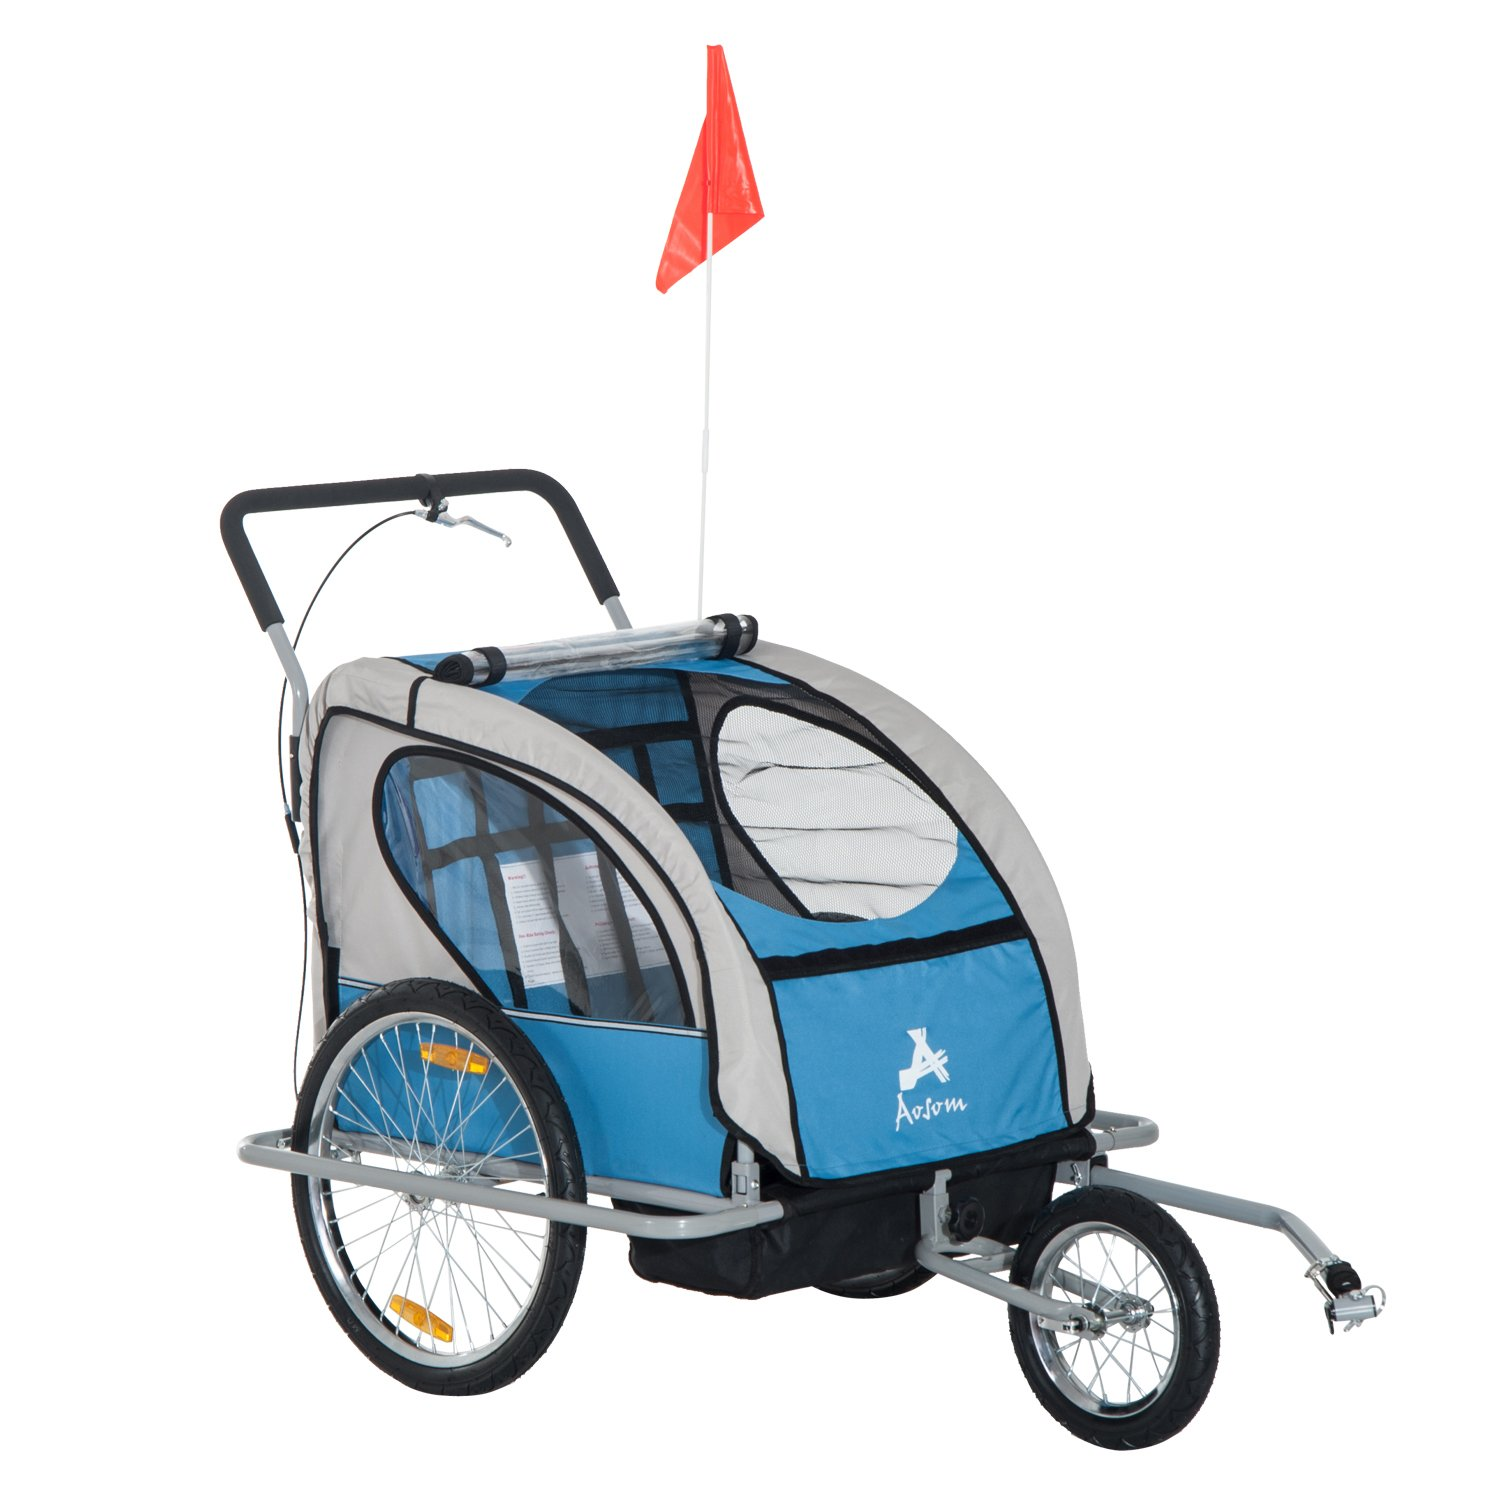 Aosom 2-in-1 Double Baby Bike Trailer Jogger Stroller (Black/Red) Aosom Canada